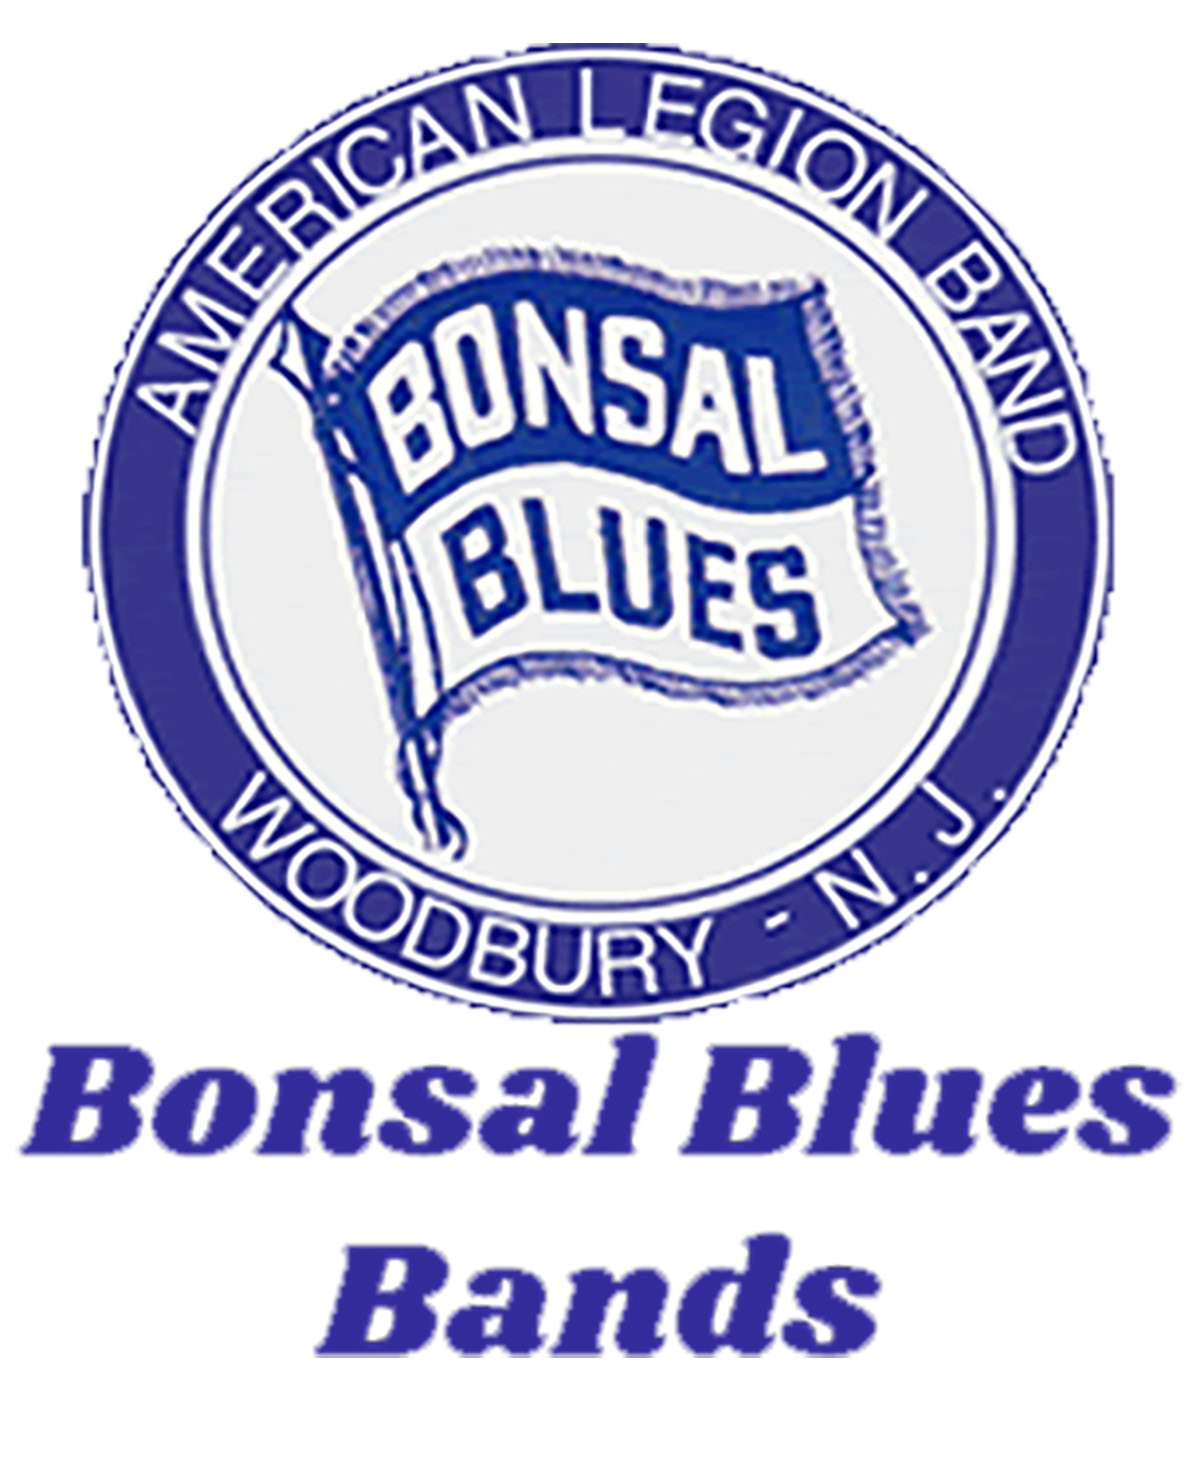 Home bonsal blues bands. Parade clipart concert band